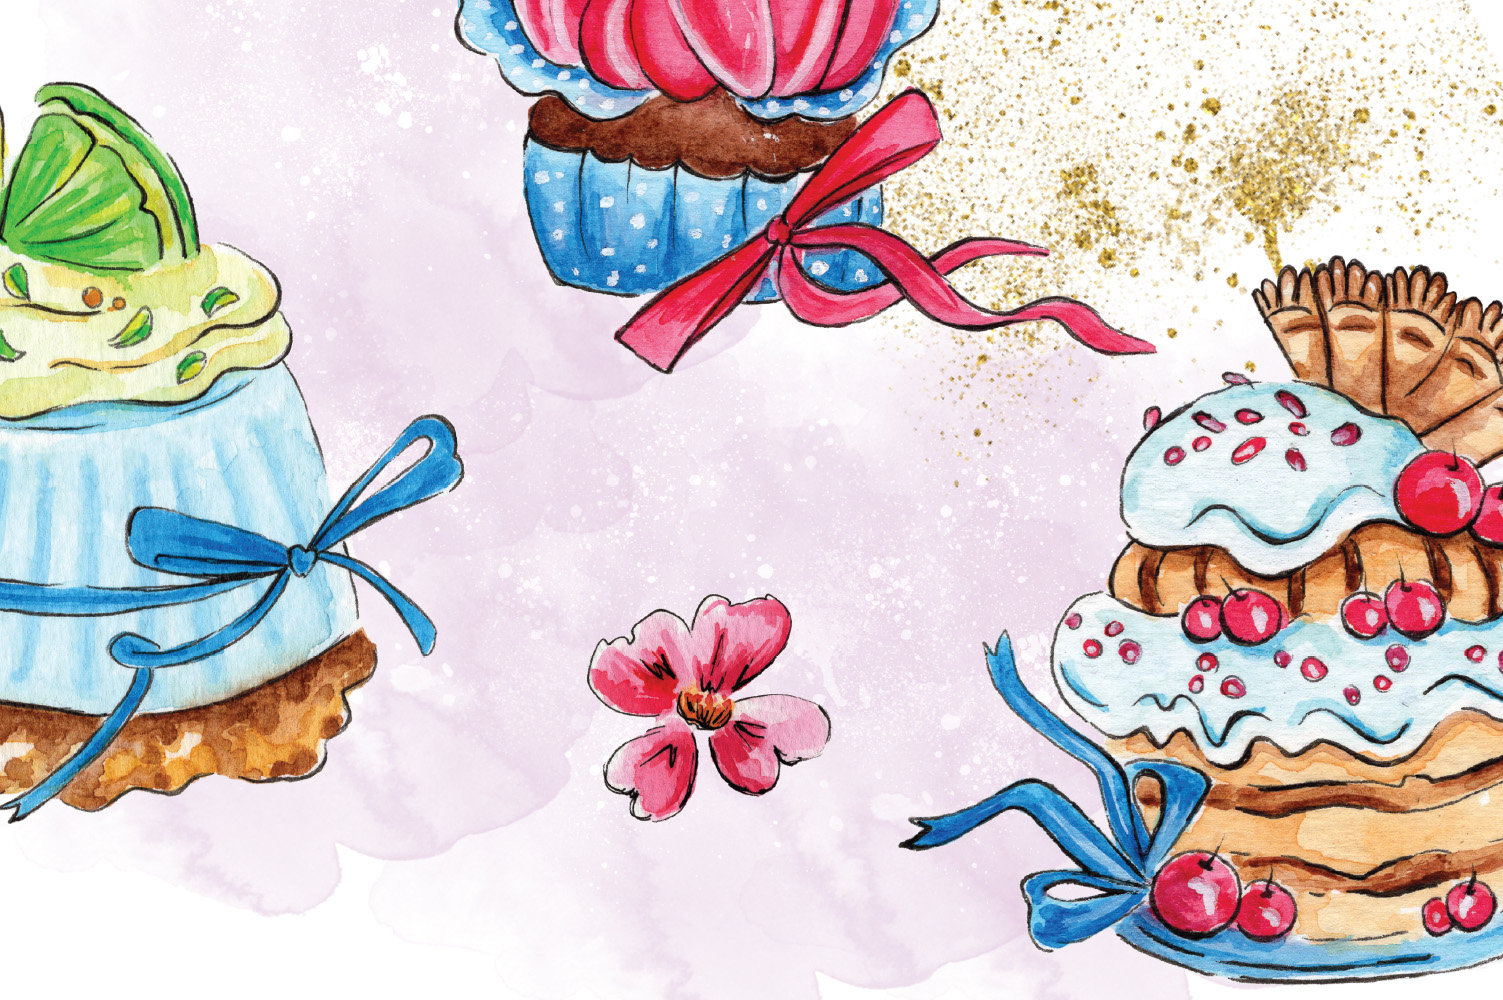 Cakes Collection Clip Art example image 3